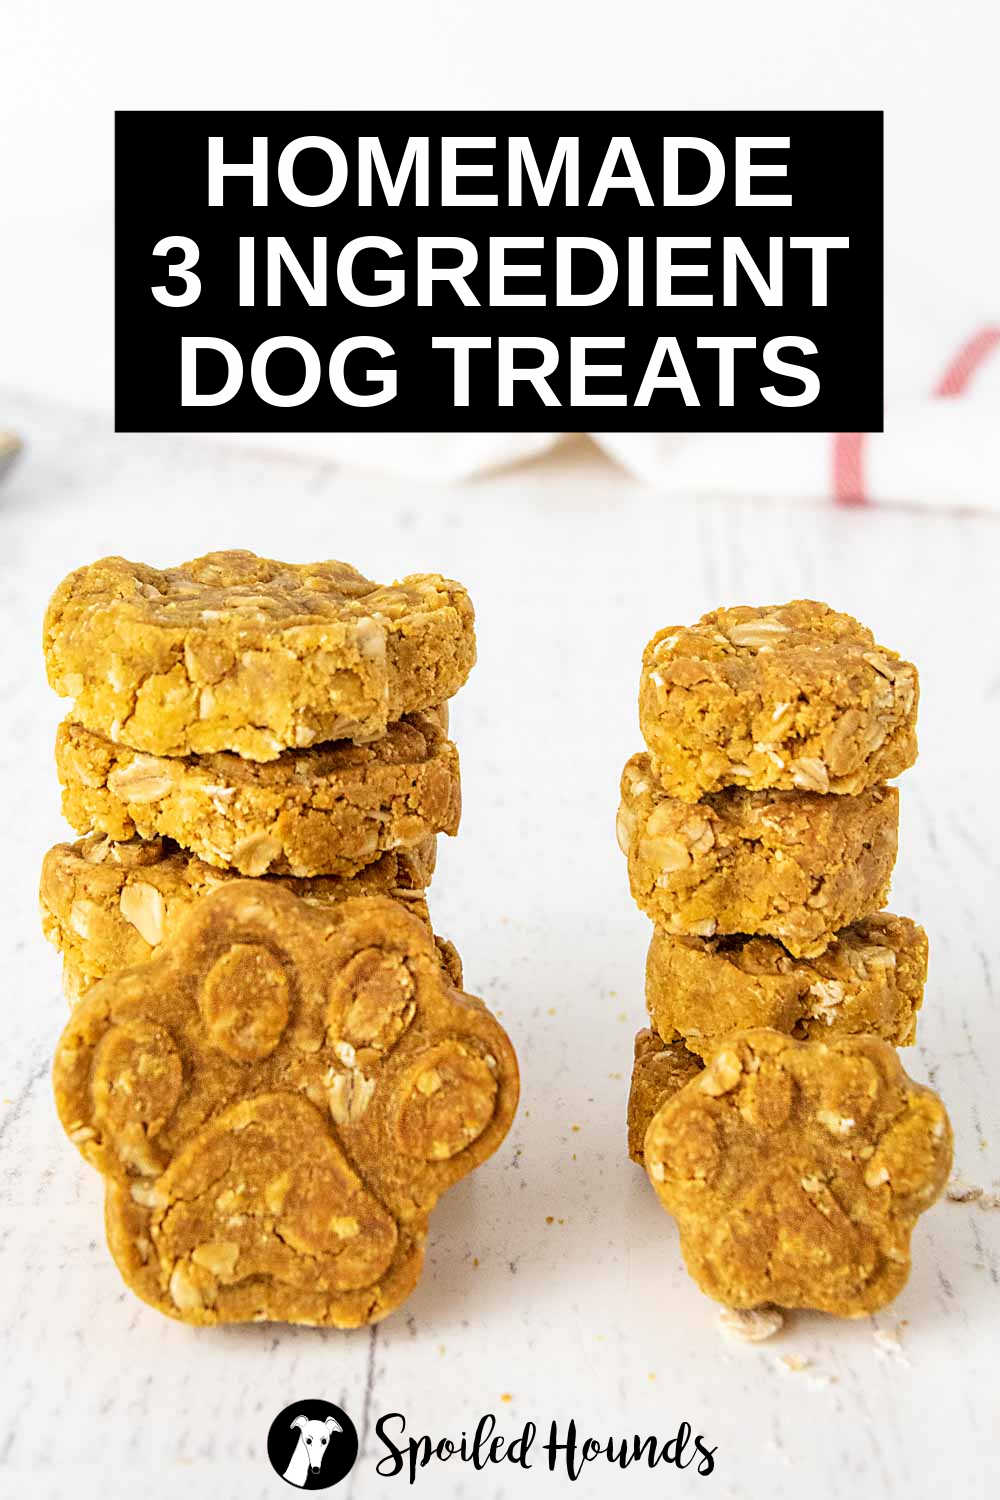 two stacks of homemade 3 ingredient dog treats